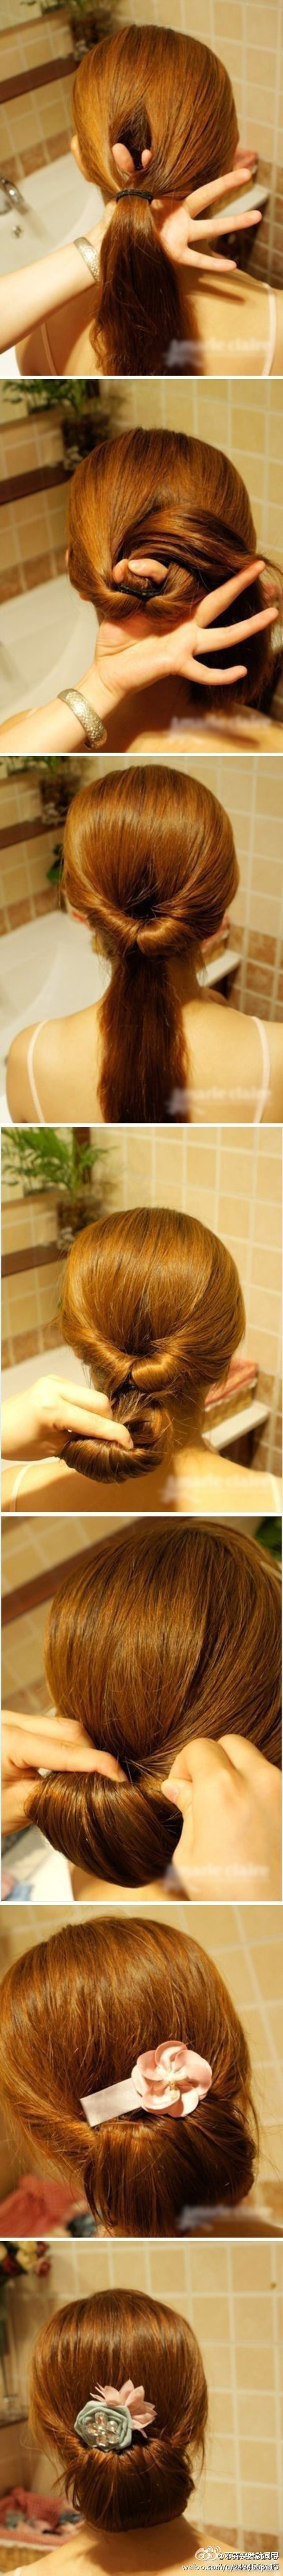 simple bun hairstyle tutorial